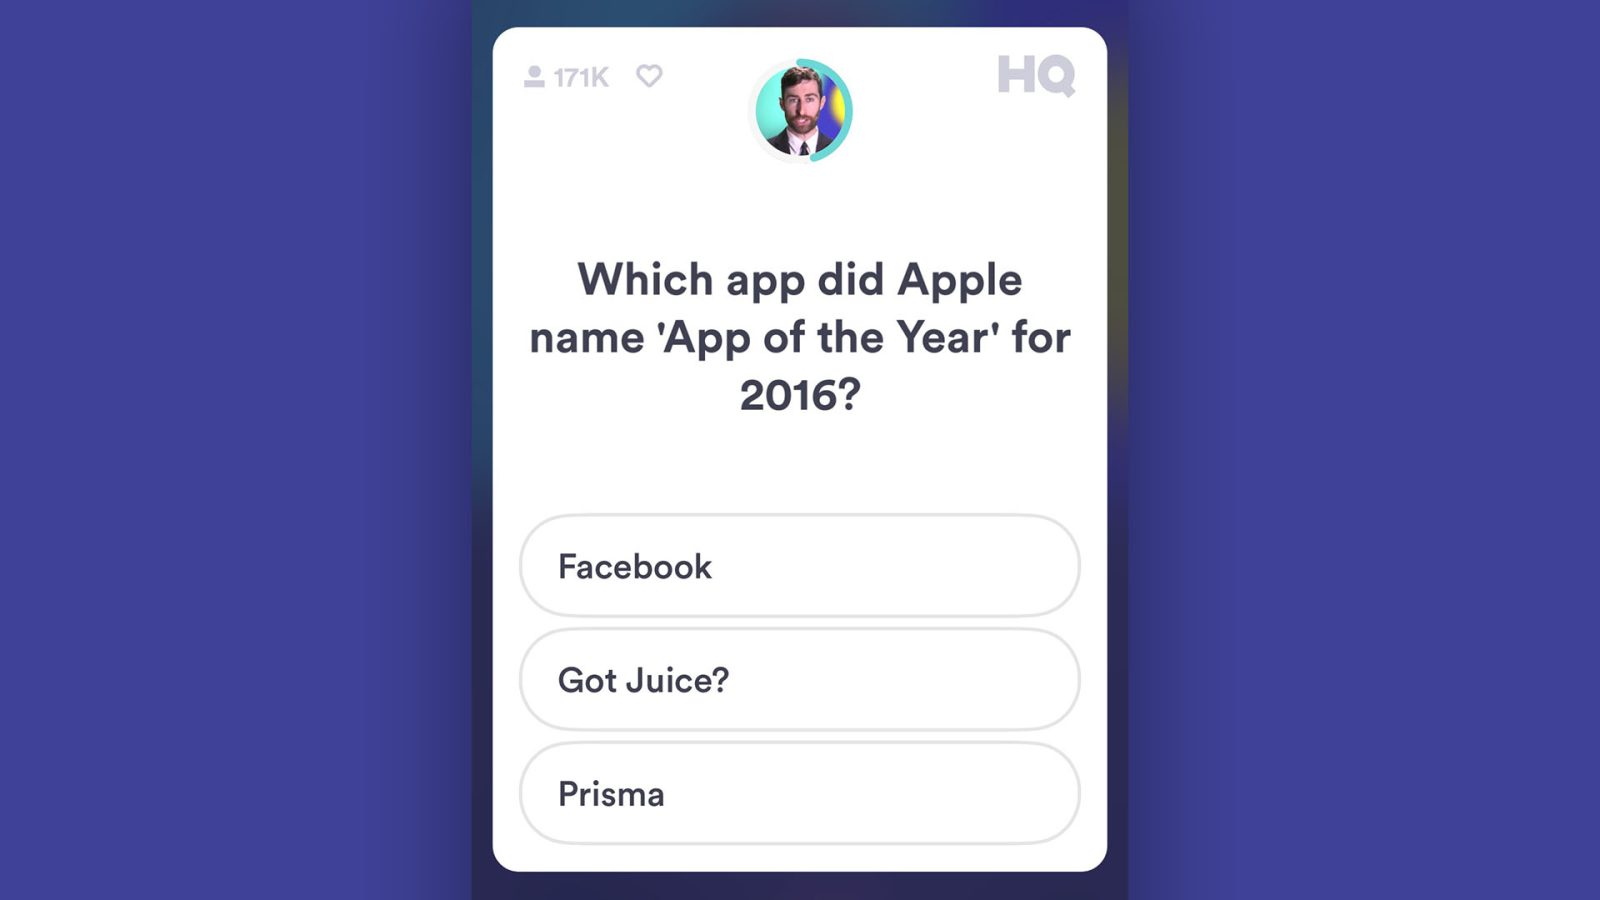 HQ Trivia shuts down after failed acquisition and declining popularity